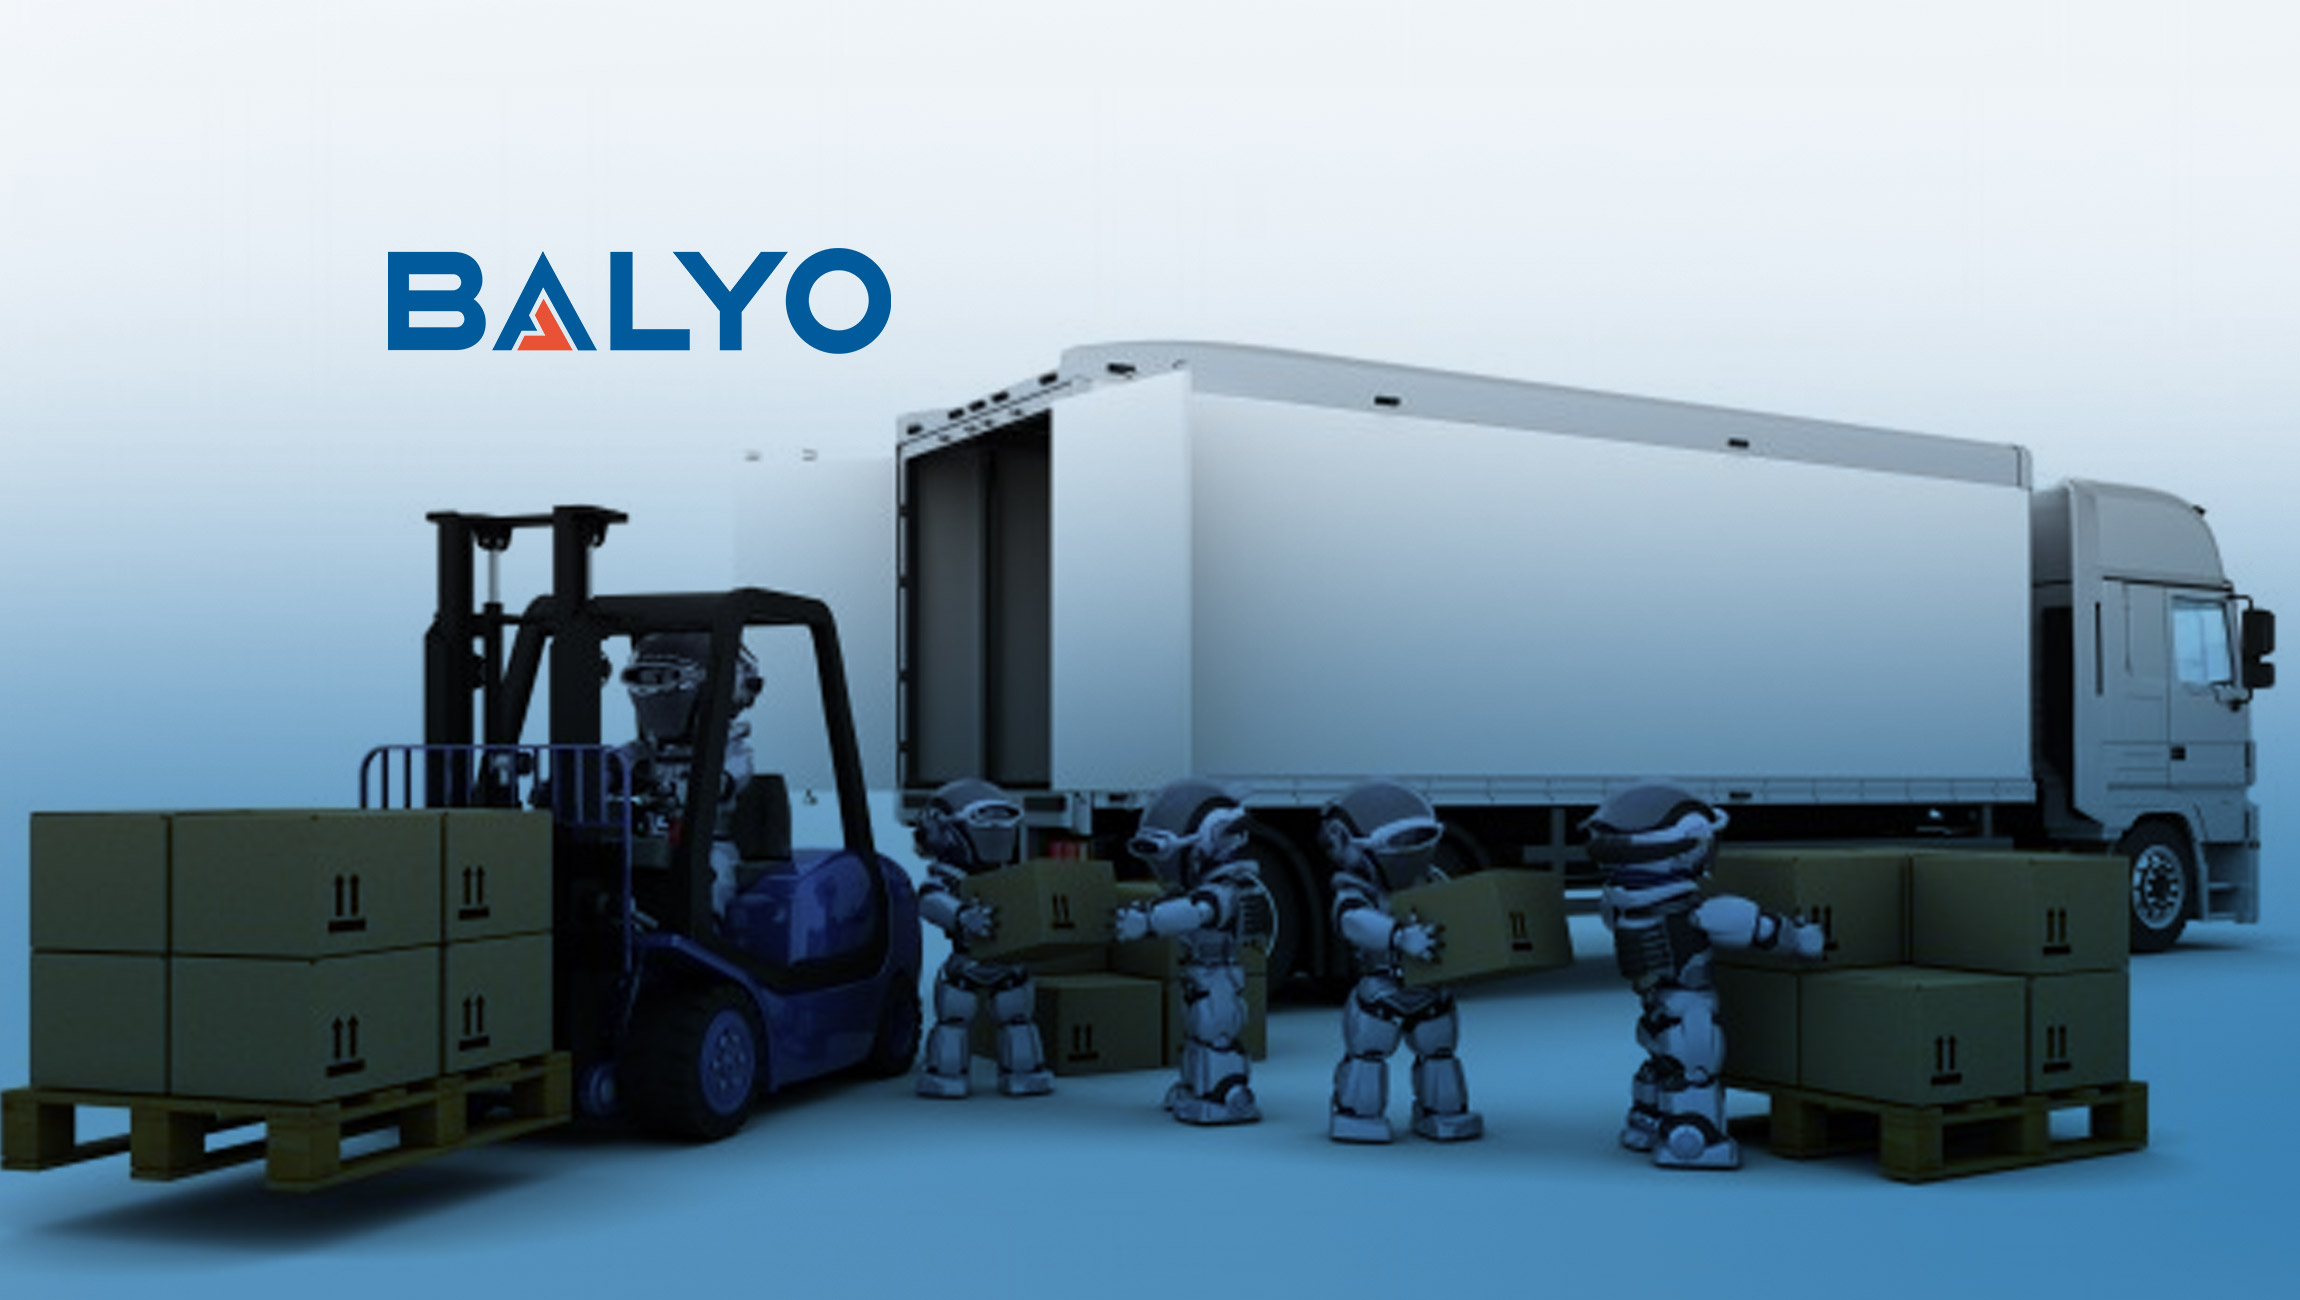 BALYO Strengthens Its Intellectual Property With 15 Patents Issued In 2019